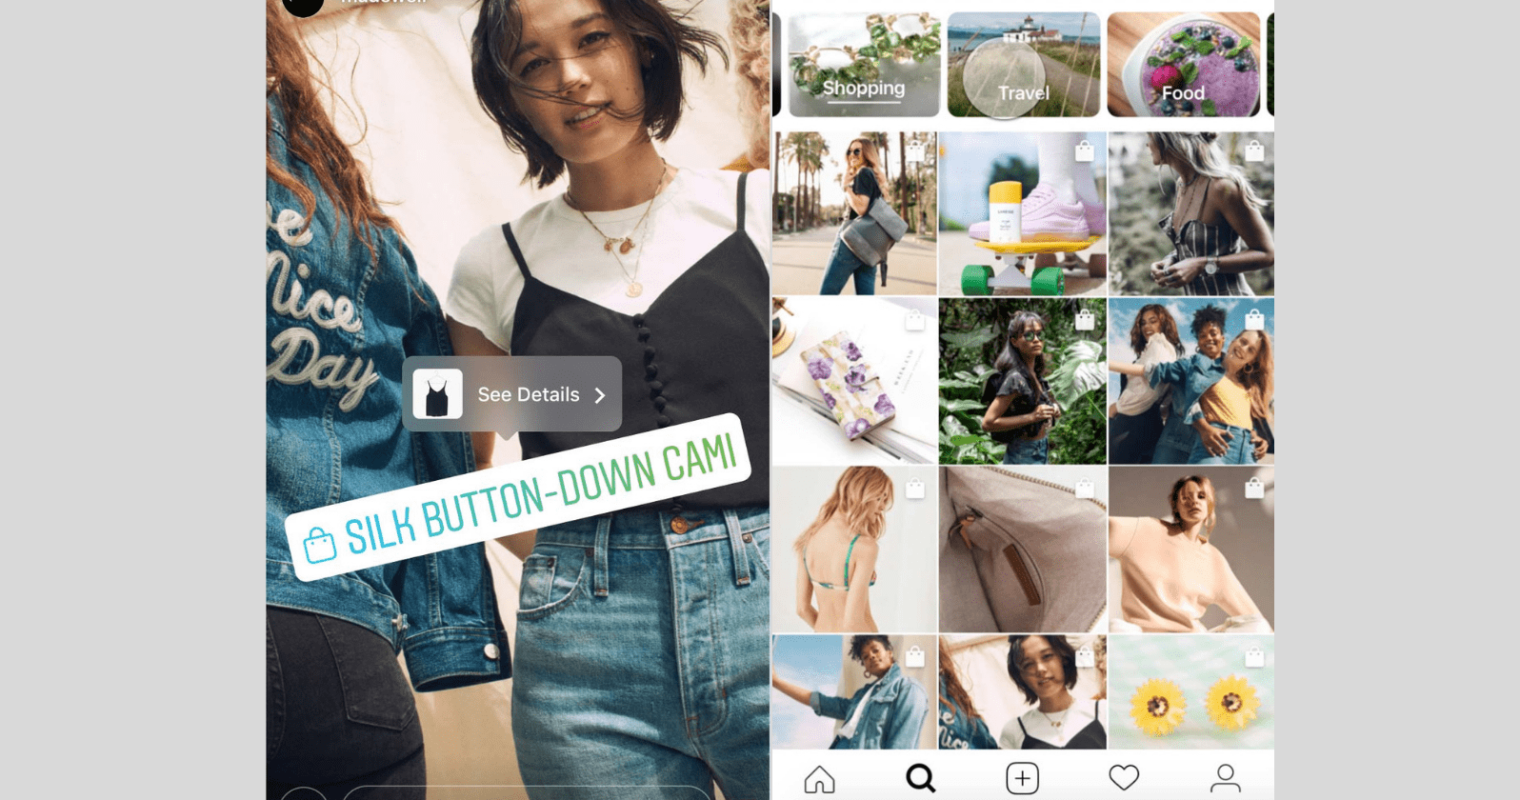 Instagram Introduces Shopping in Stories, New Shopping Section in Explore